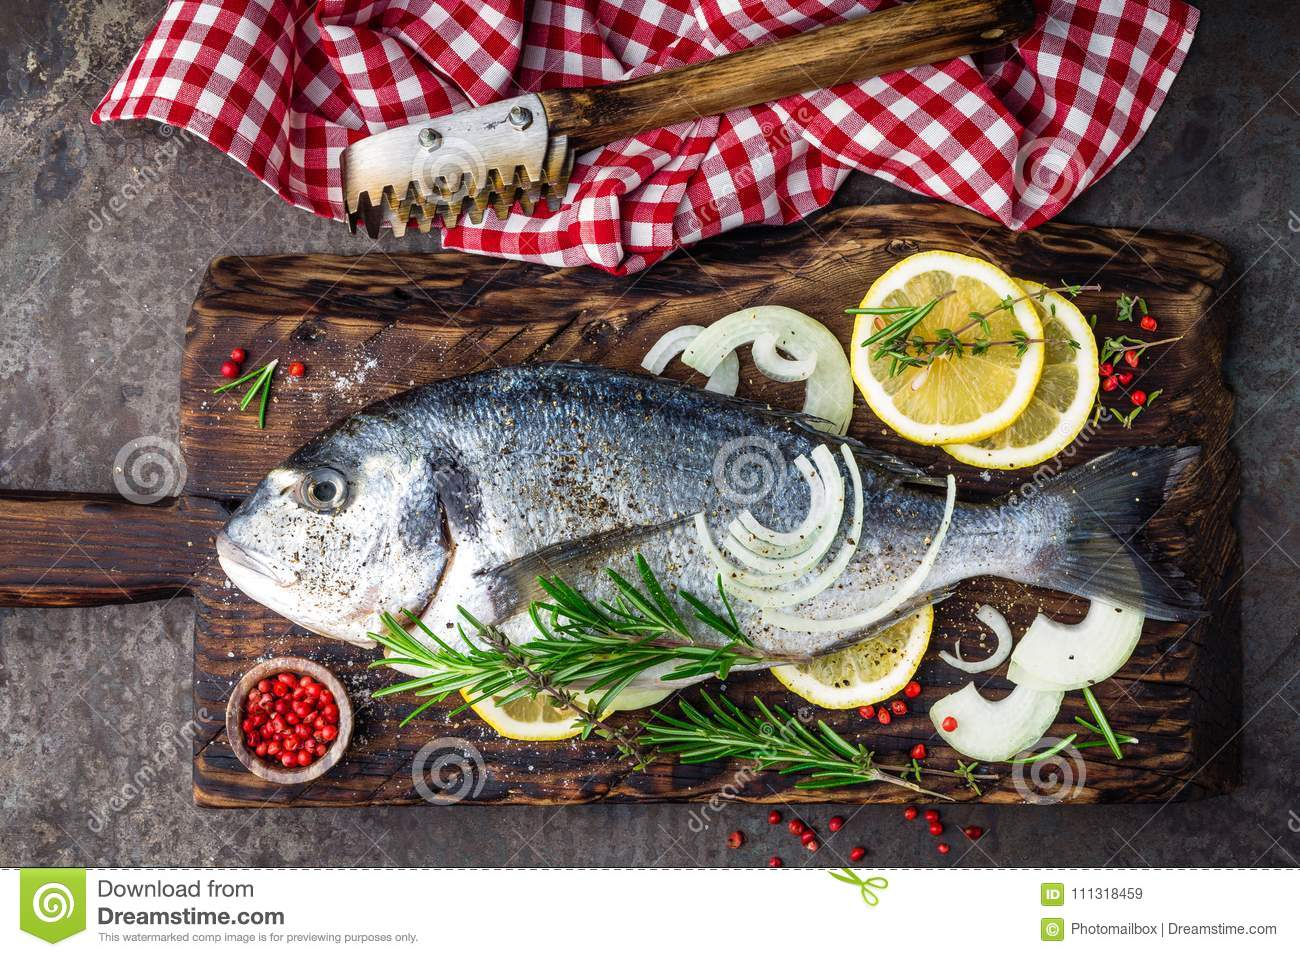 How dorado and sea bass are cooked Recipes and recommendations 53